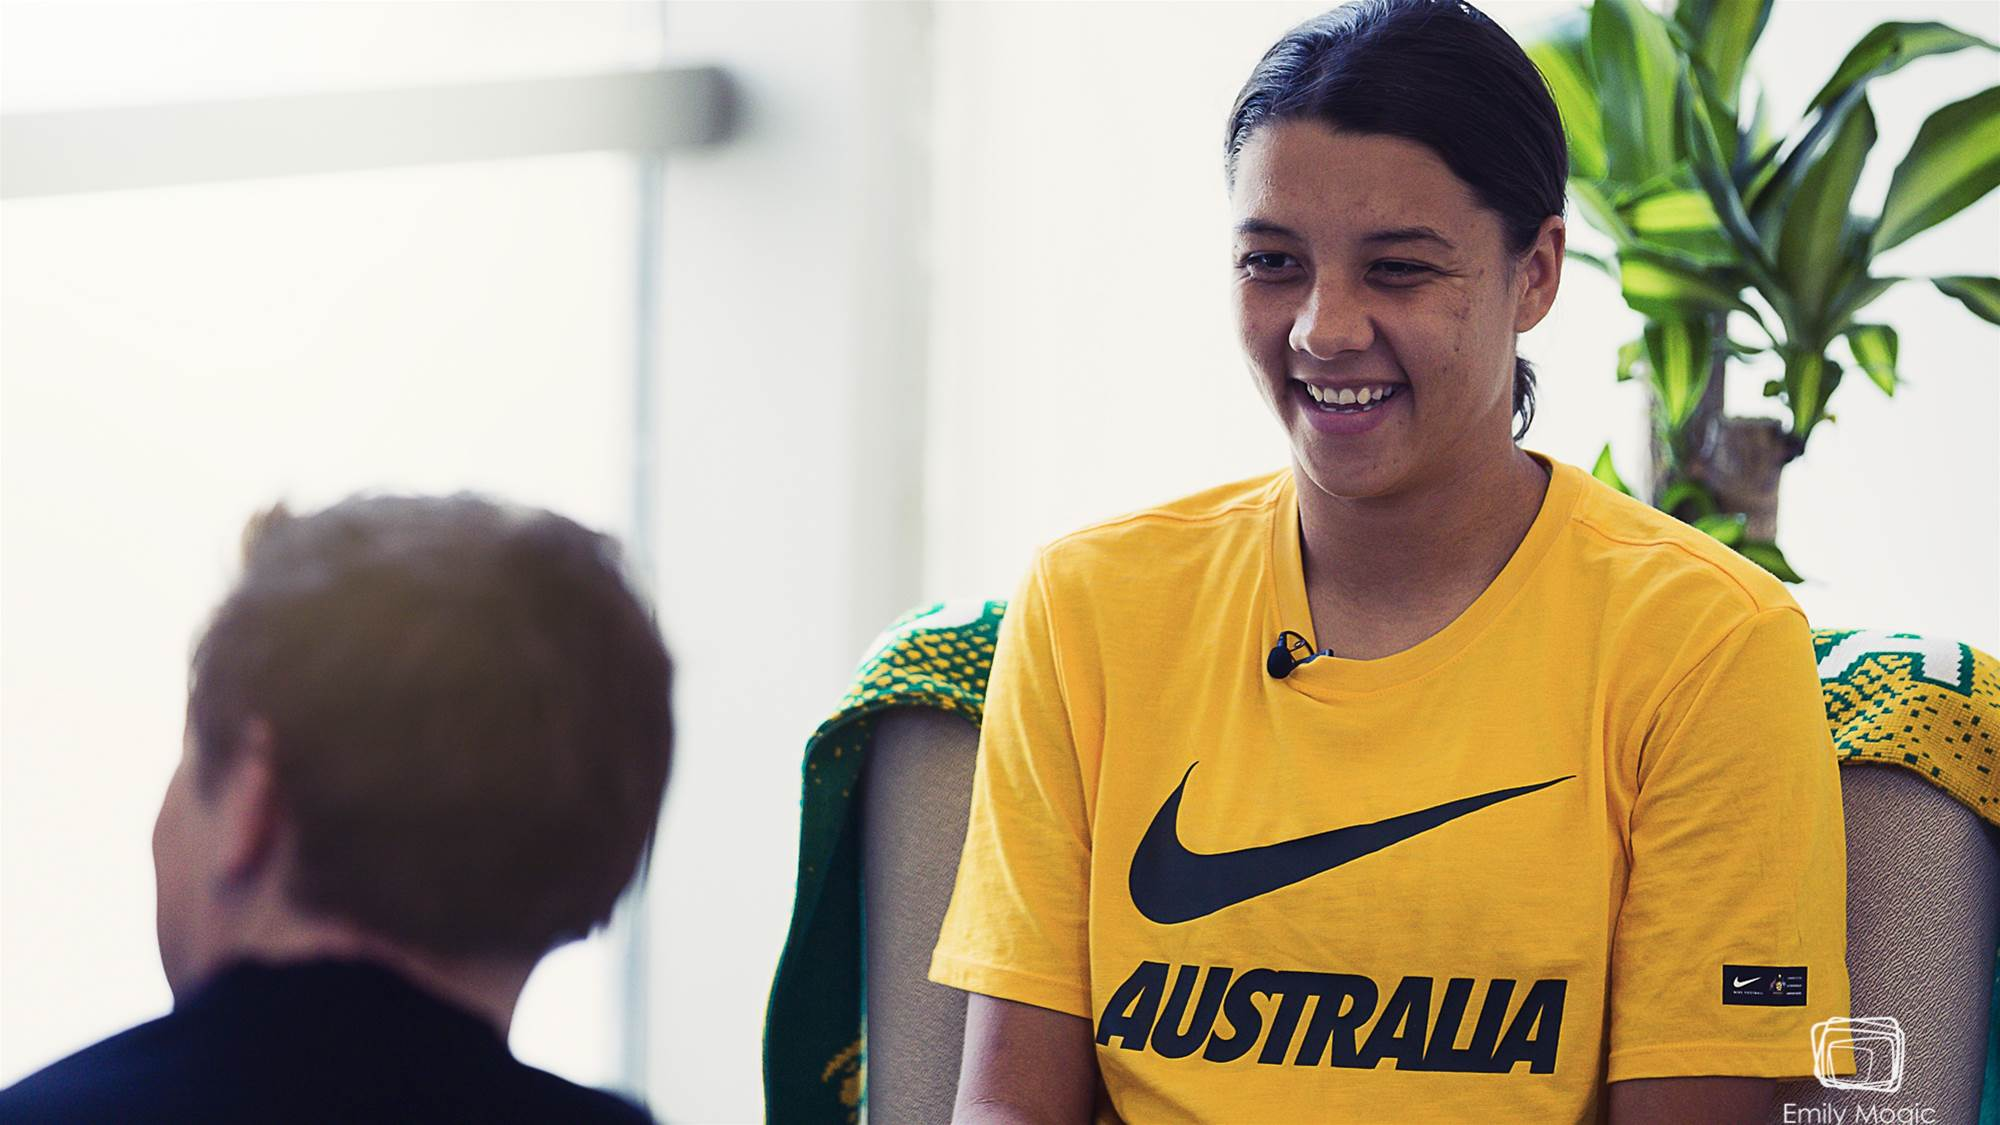 8 Years On: Sam Kerr